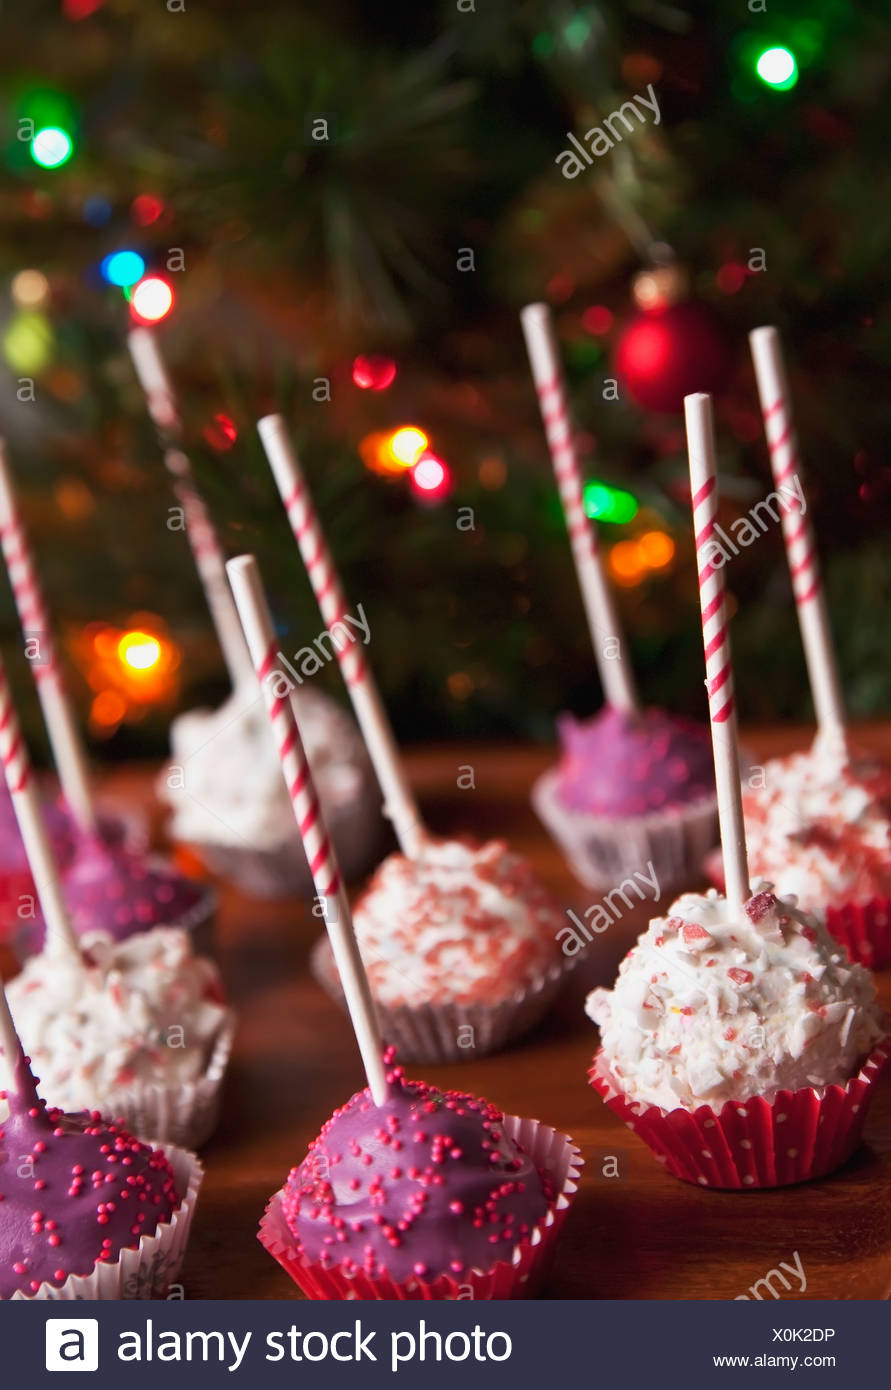 Decorated Pink Cake Pops In Front Of A Christmas Tree Edmonton